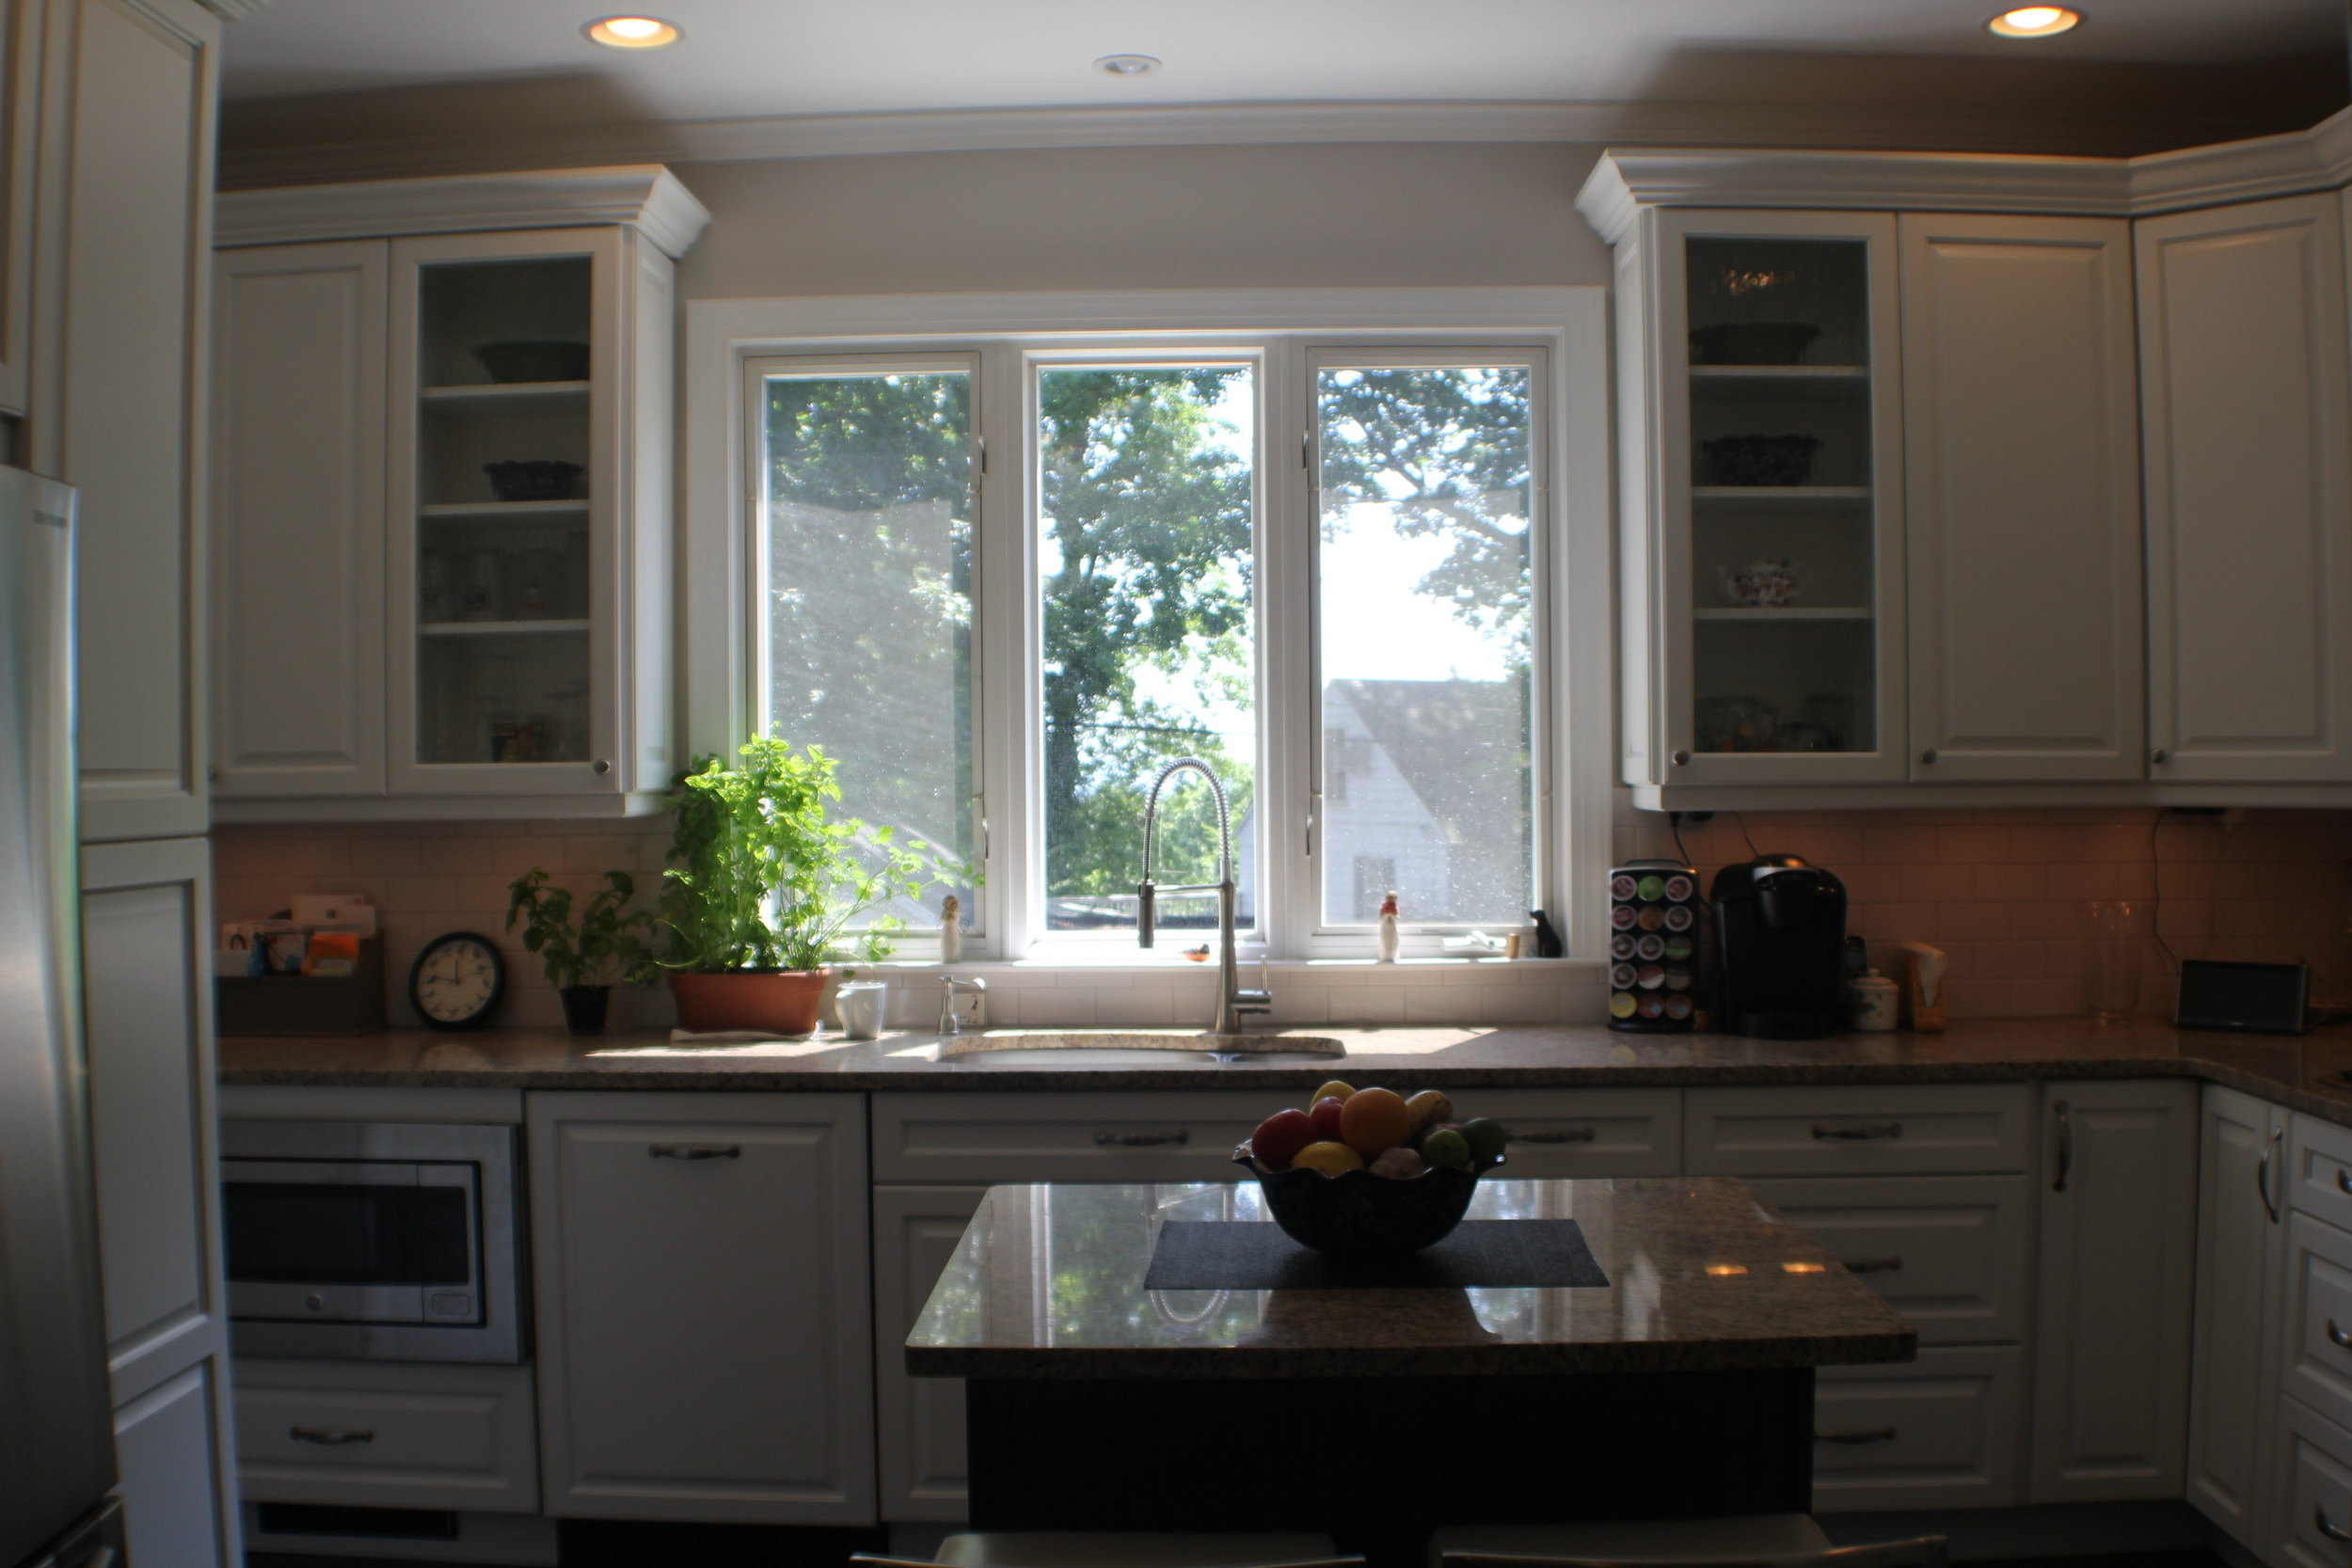 Kitchen & Bathroom Designers in Brooklyn, NY | Total Kitchen ...